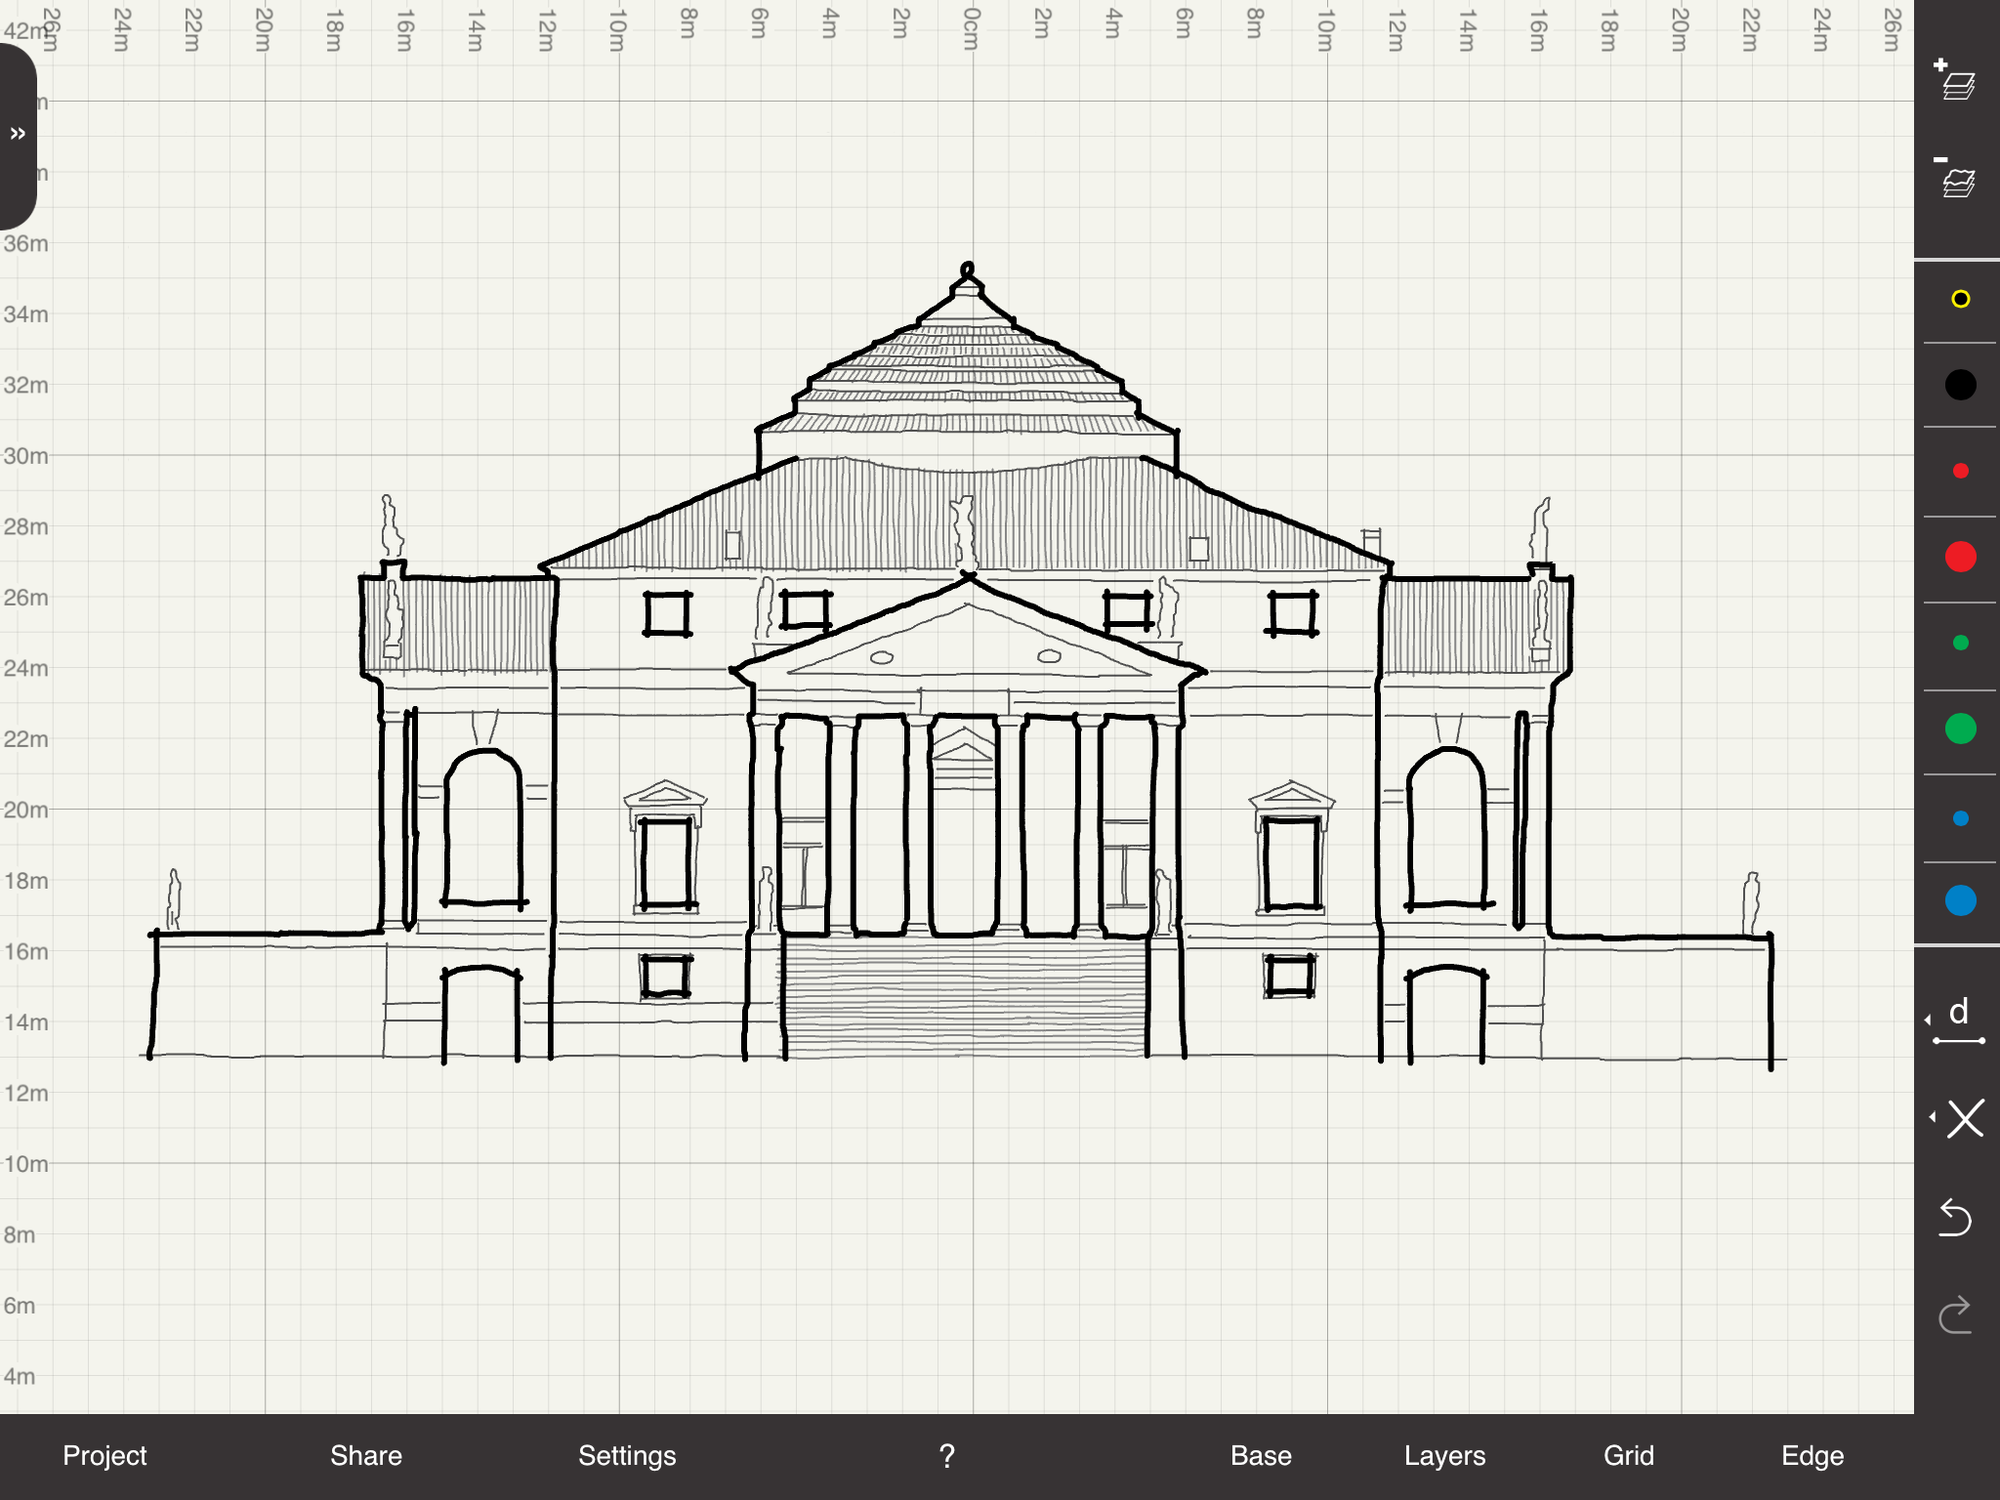 App Review: Arrette Scale - Precision Scale Drawing, Palladio's Villa Rotunda. Image Courtesy of Arrette Scale